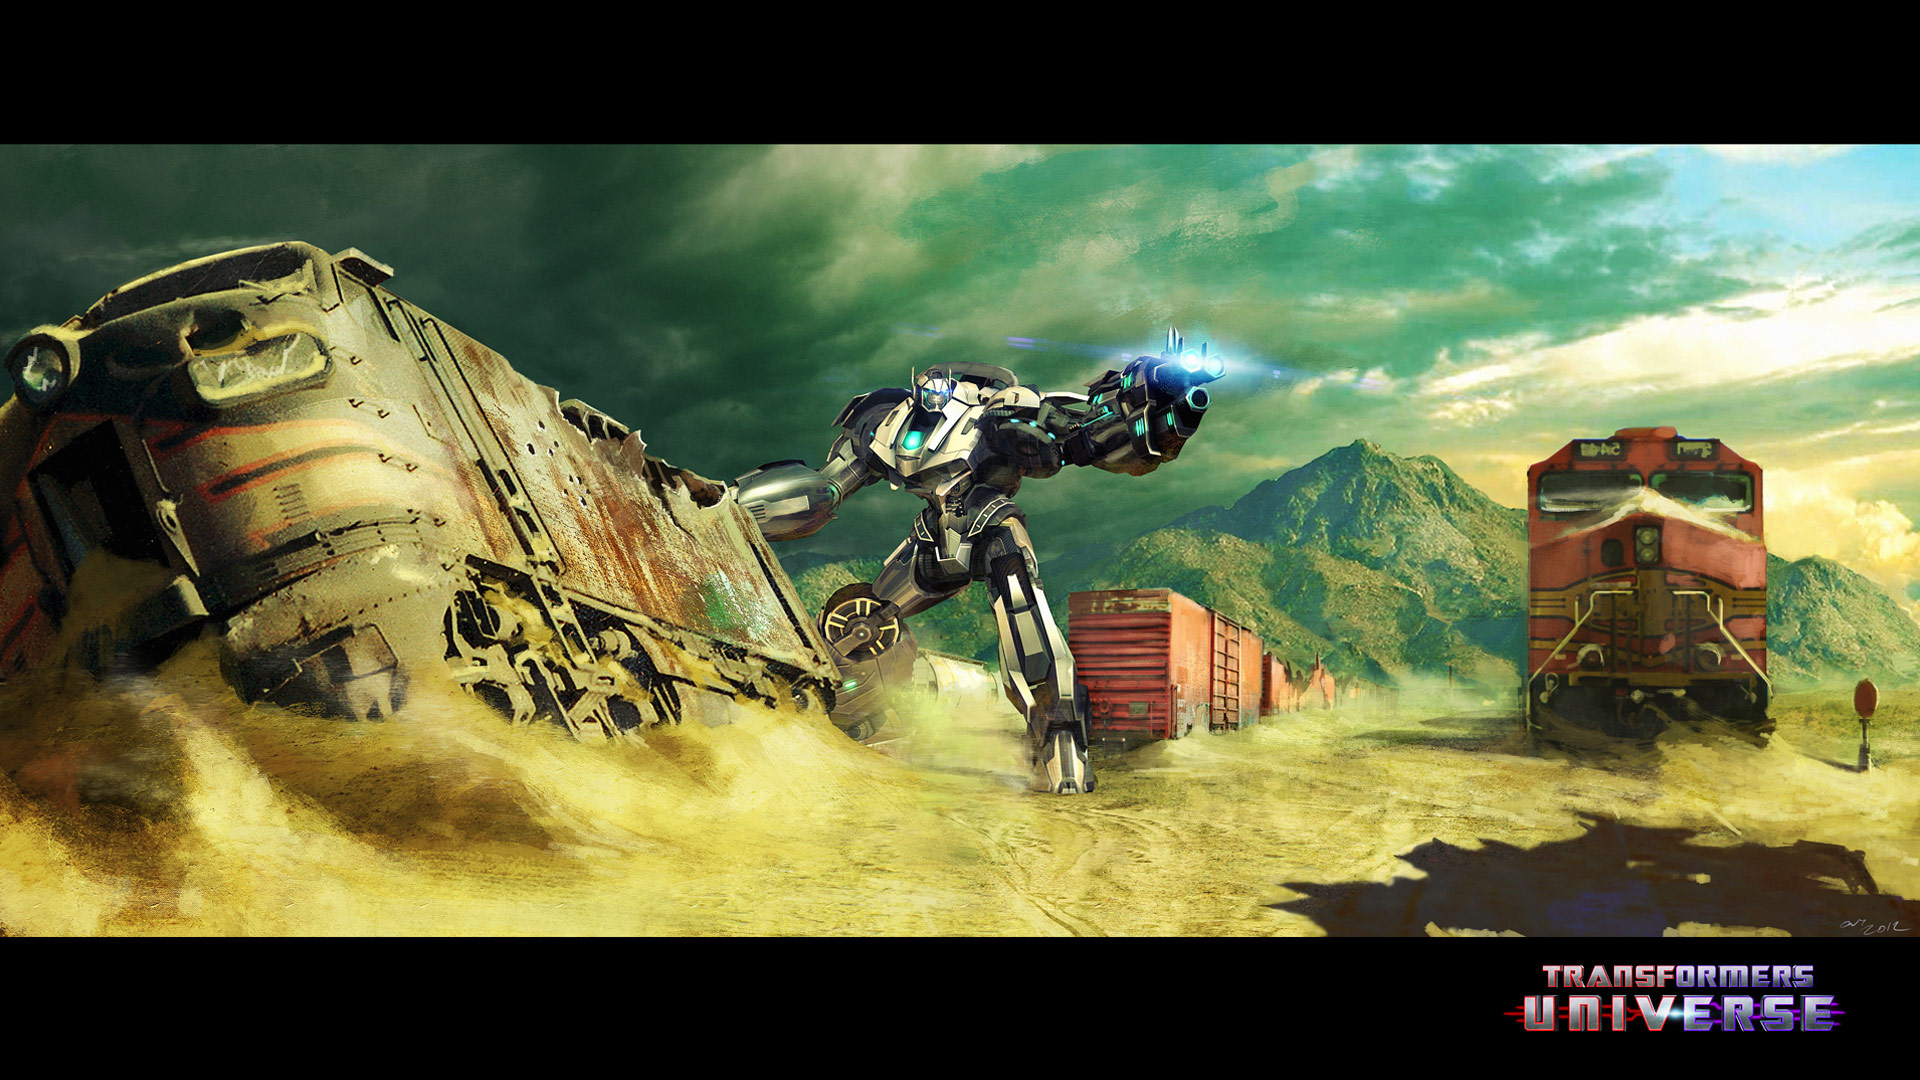 Grimlock Fall Of Cybertron Wallpaper Transformers Universe Game New Character Concept Art